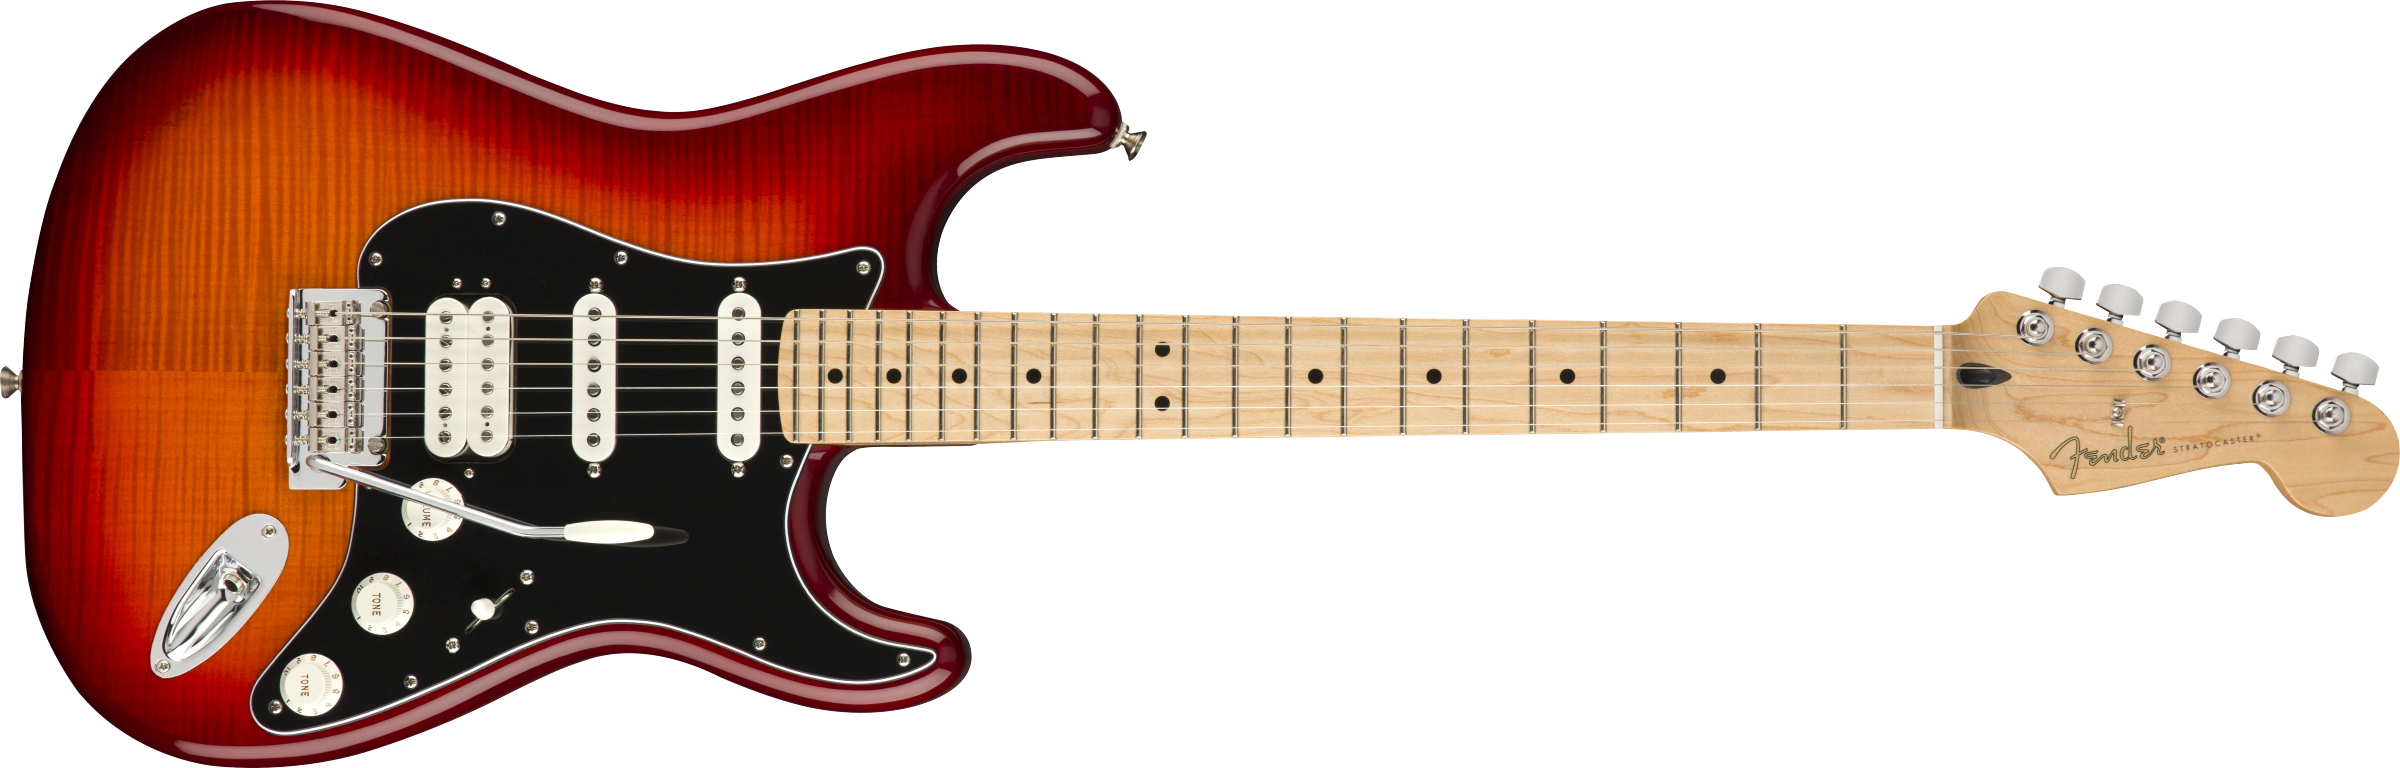 0144562531_player_stratocaster_1